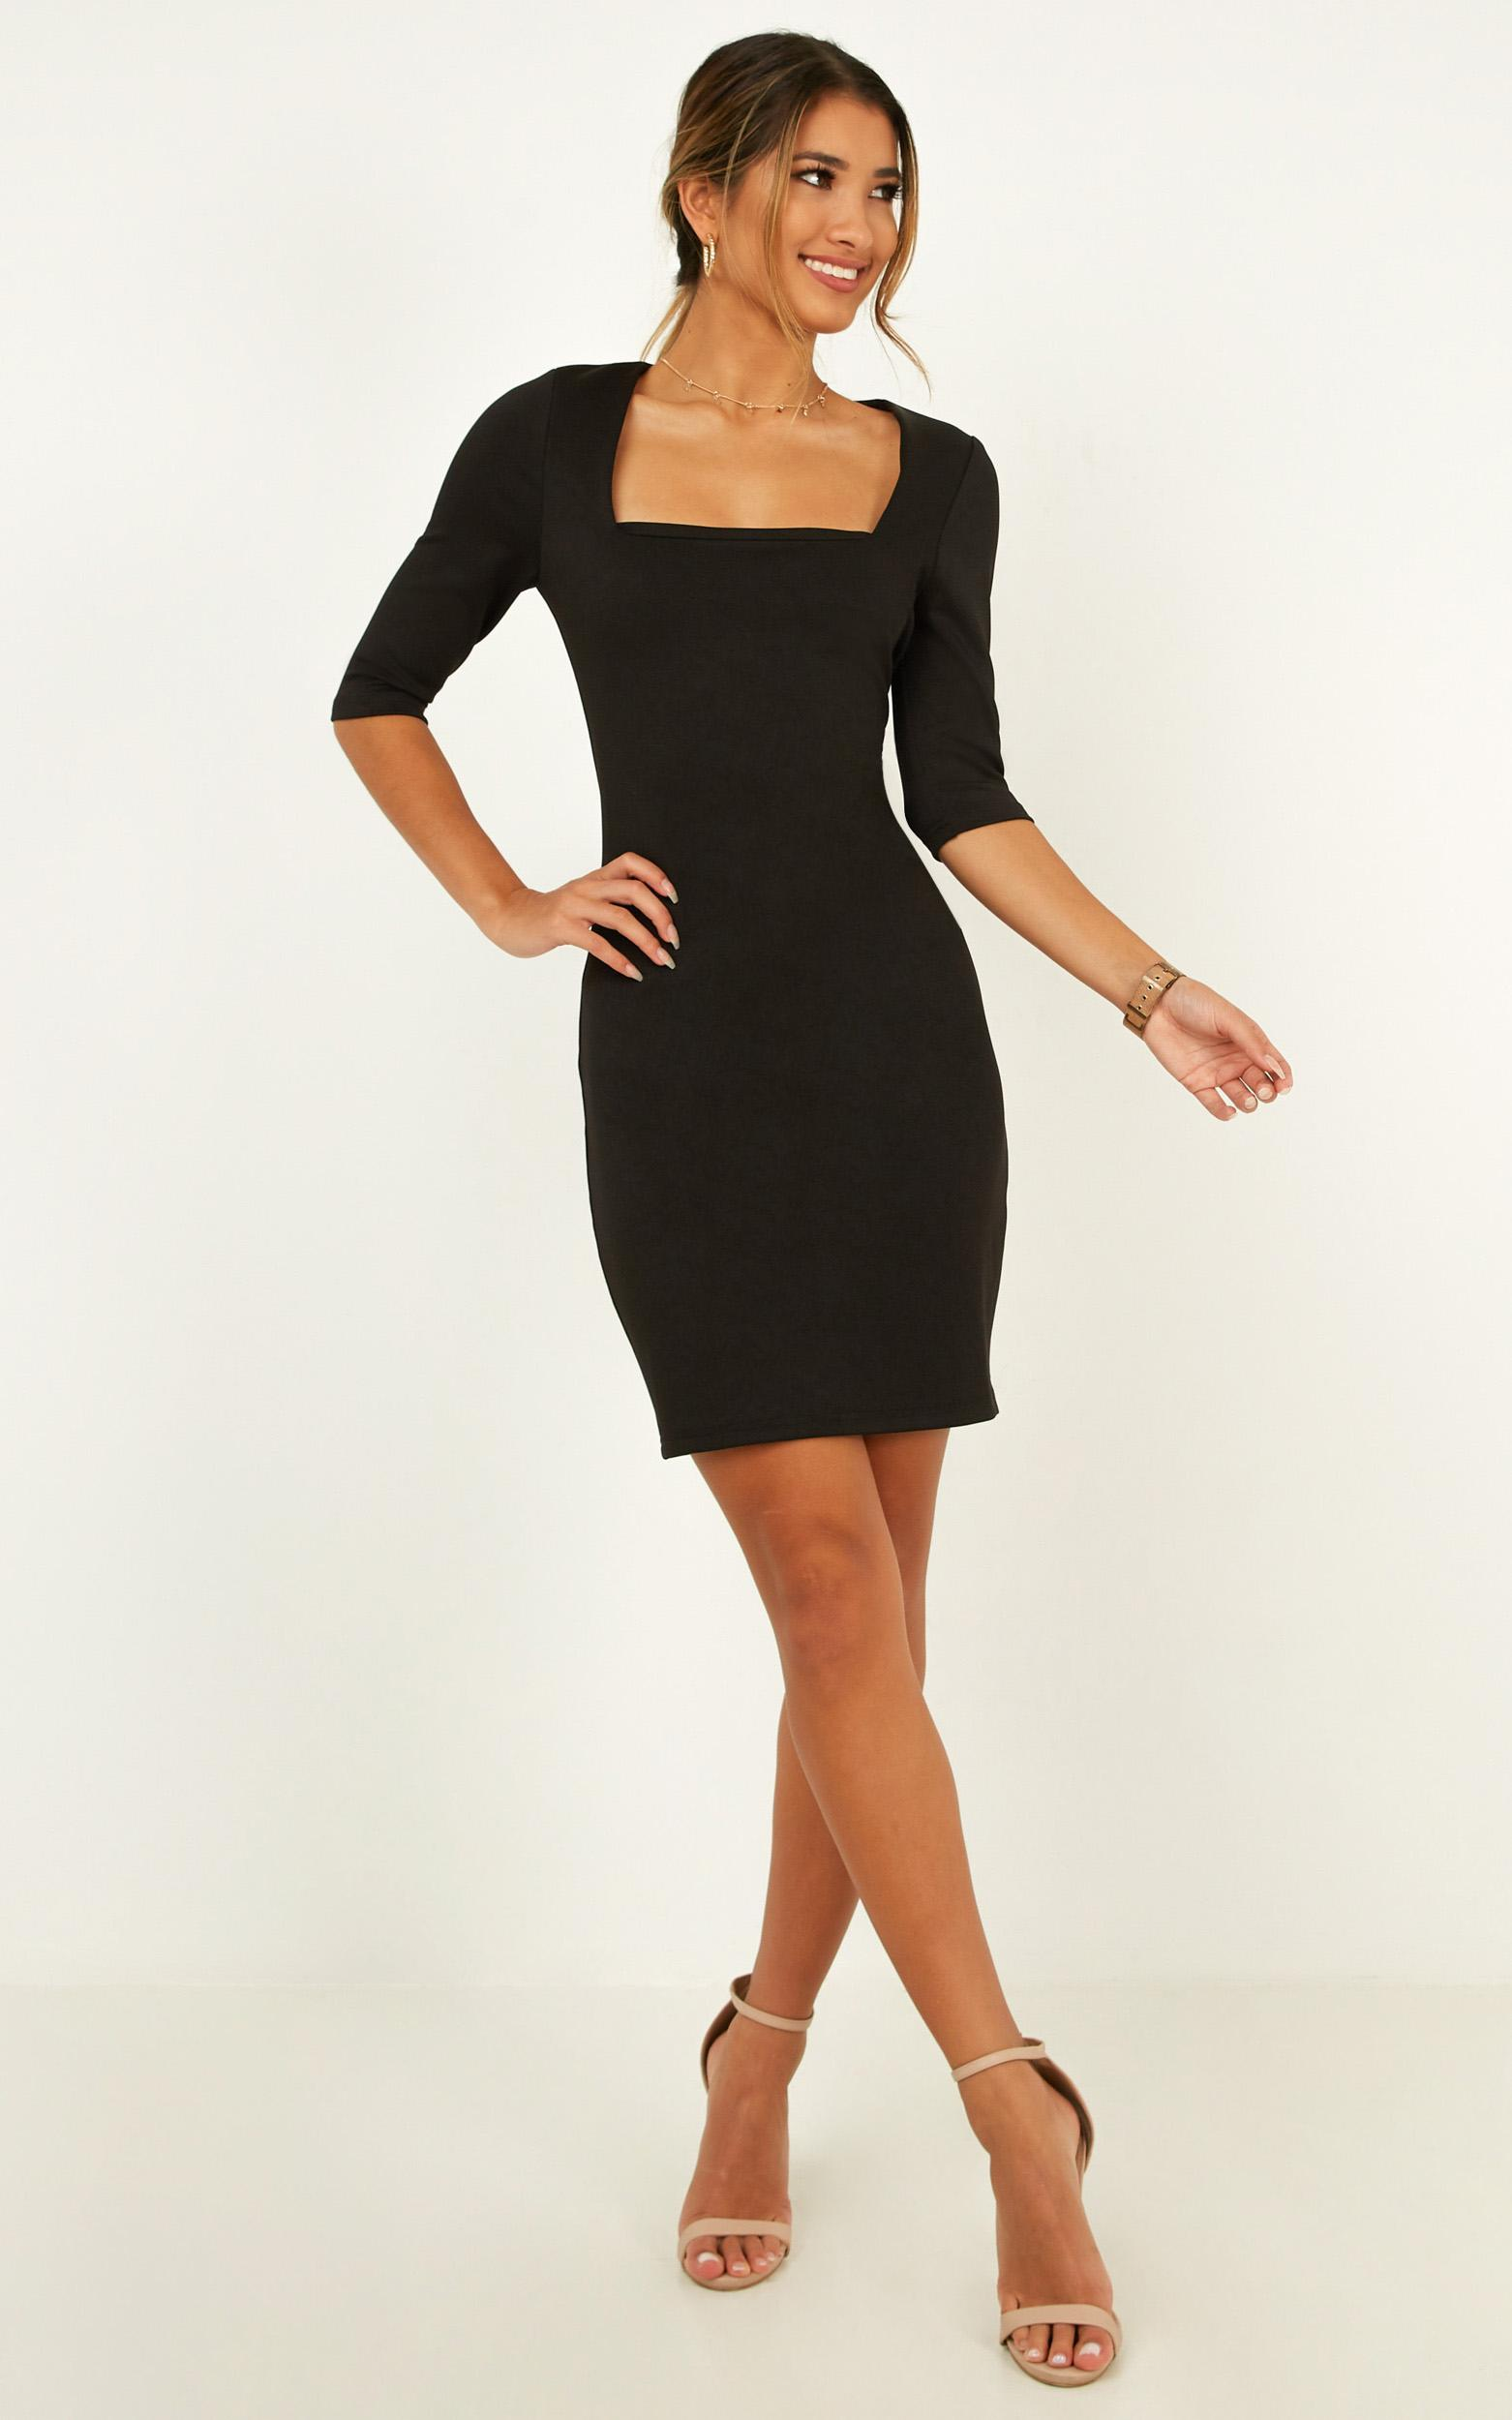 Searching for Love Dress in black - 20 (XXXXL), Black, hi-res image number null